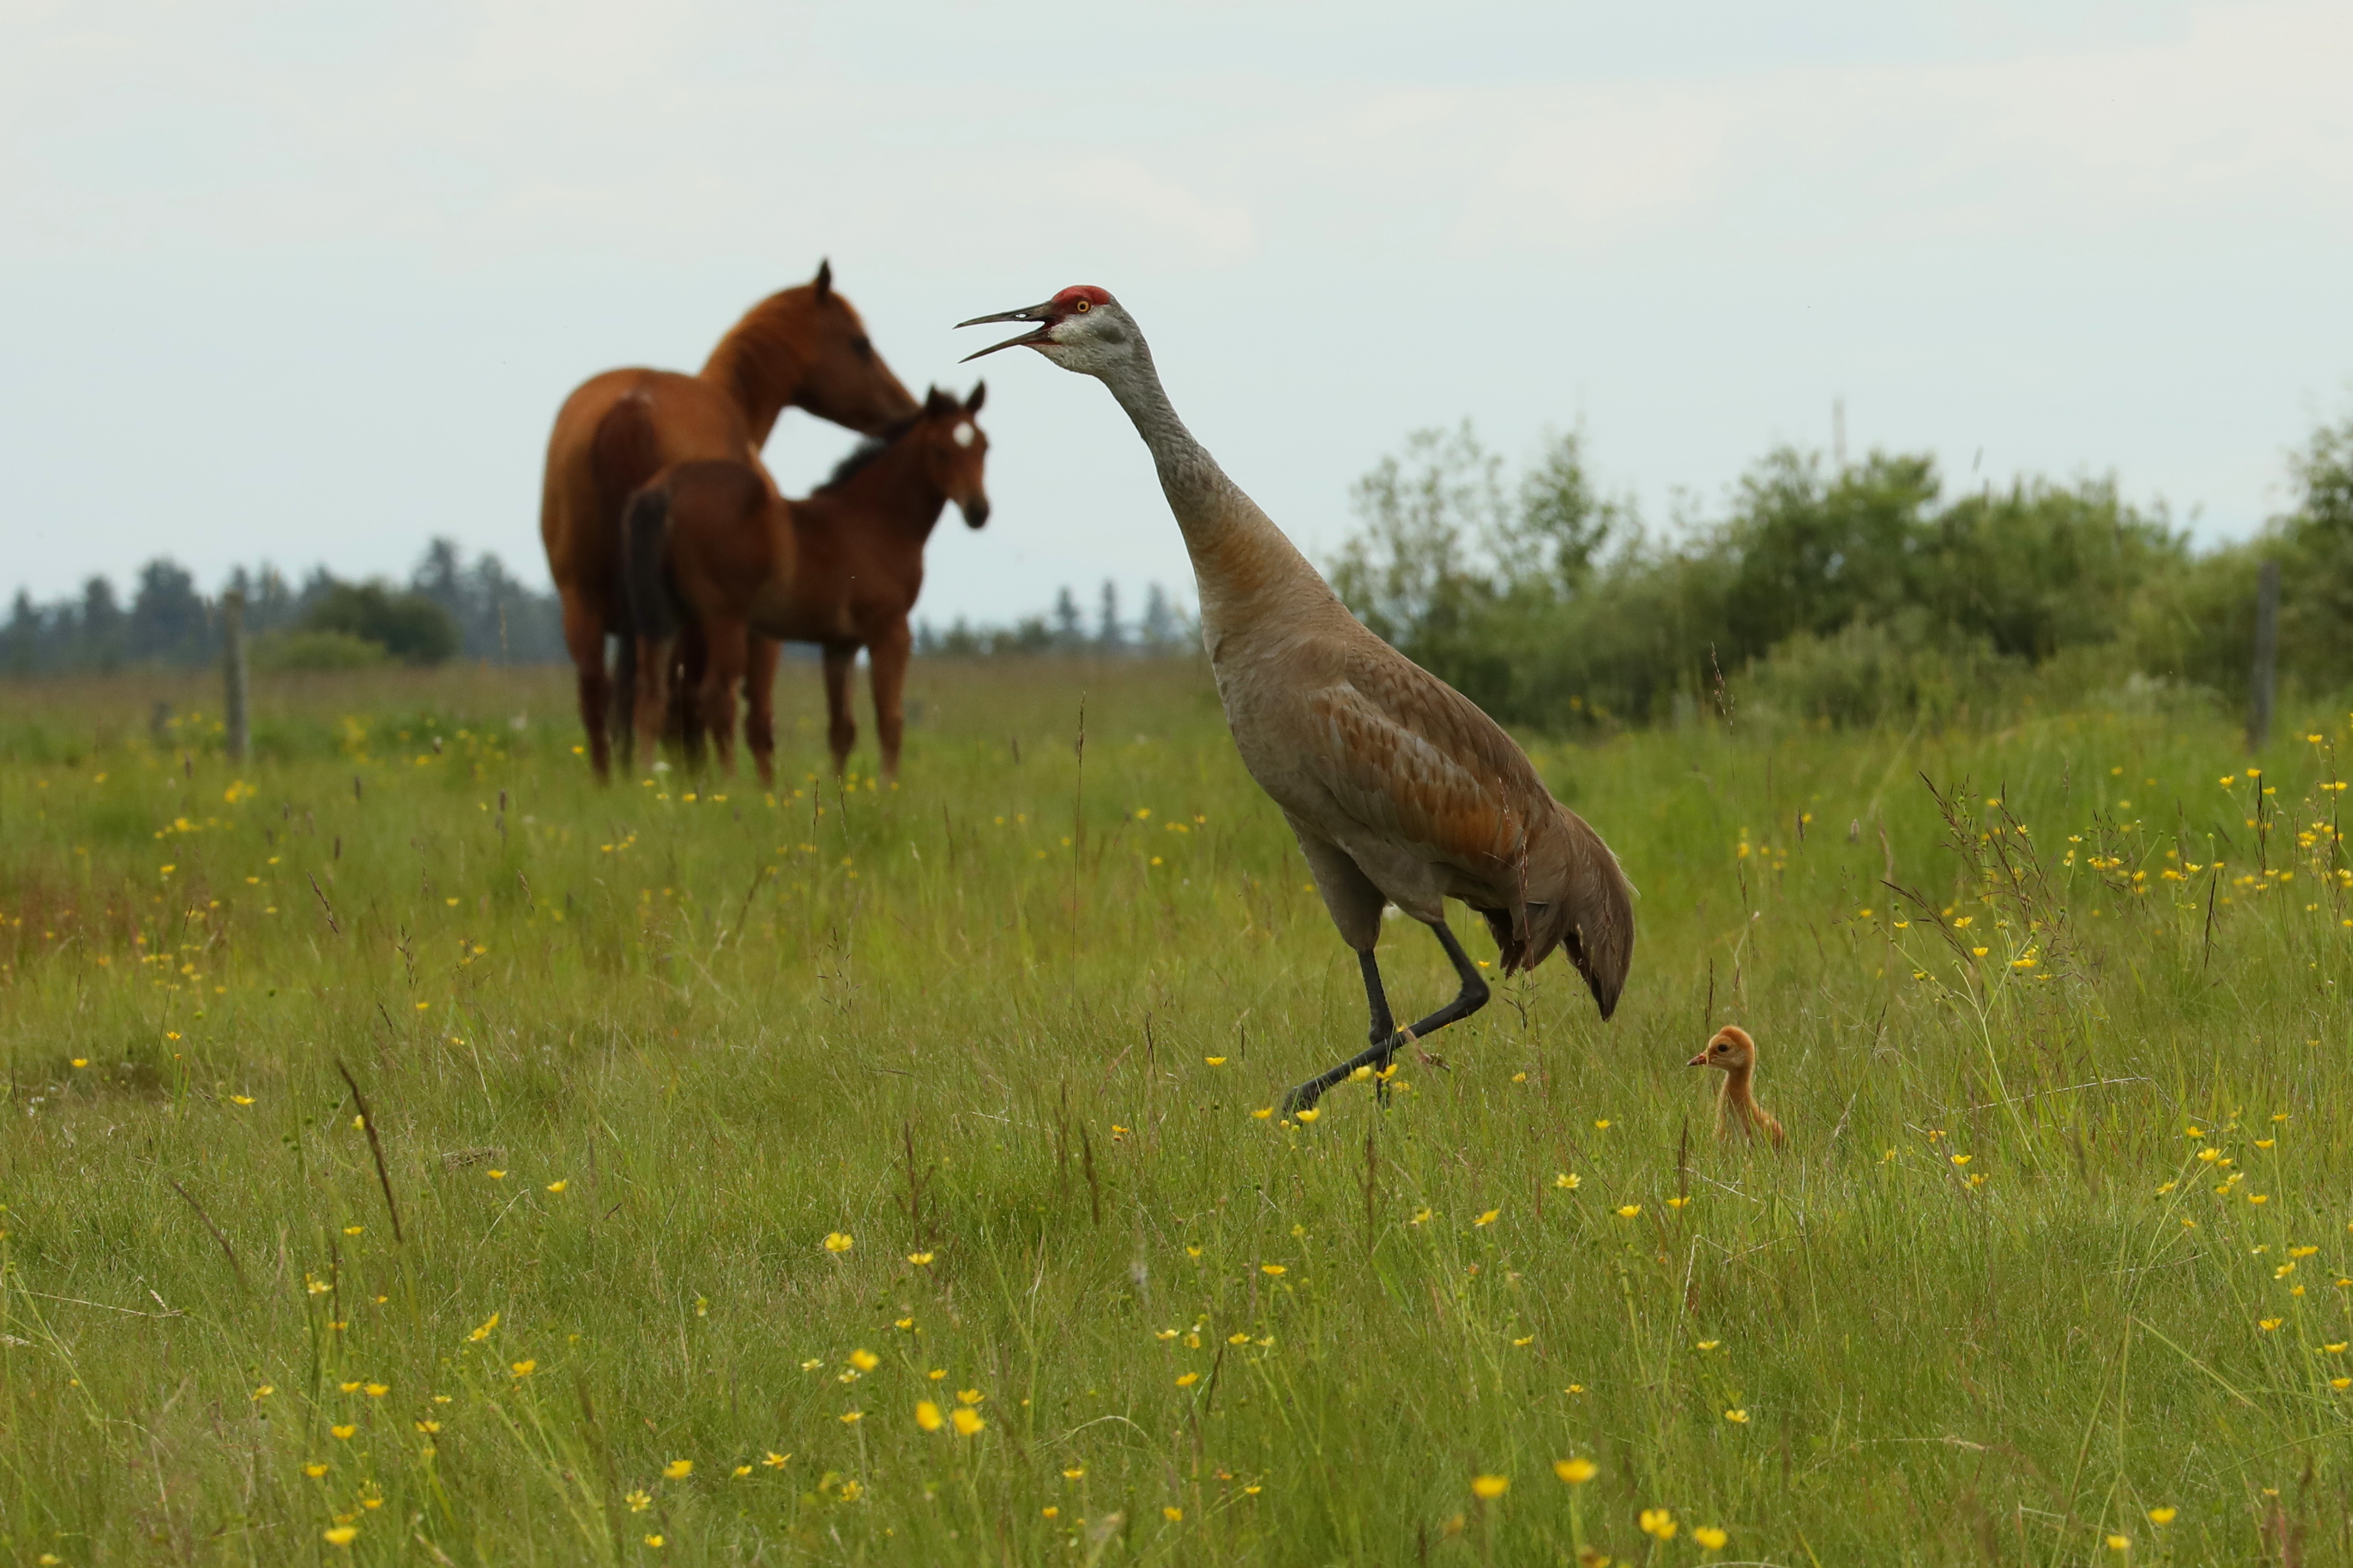 sandhill crane family shares the horse pasture